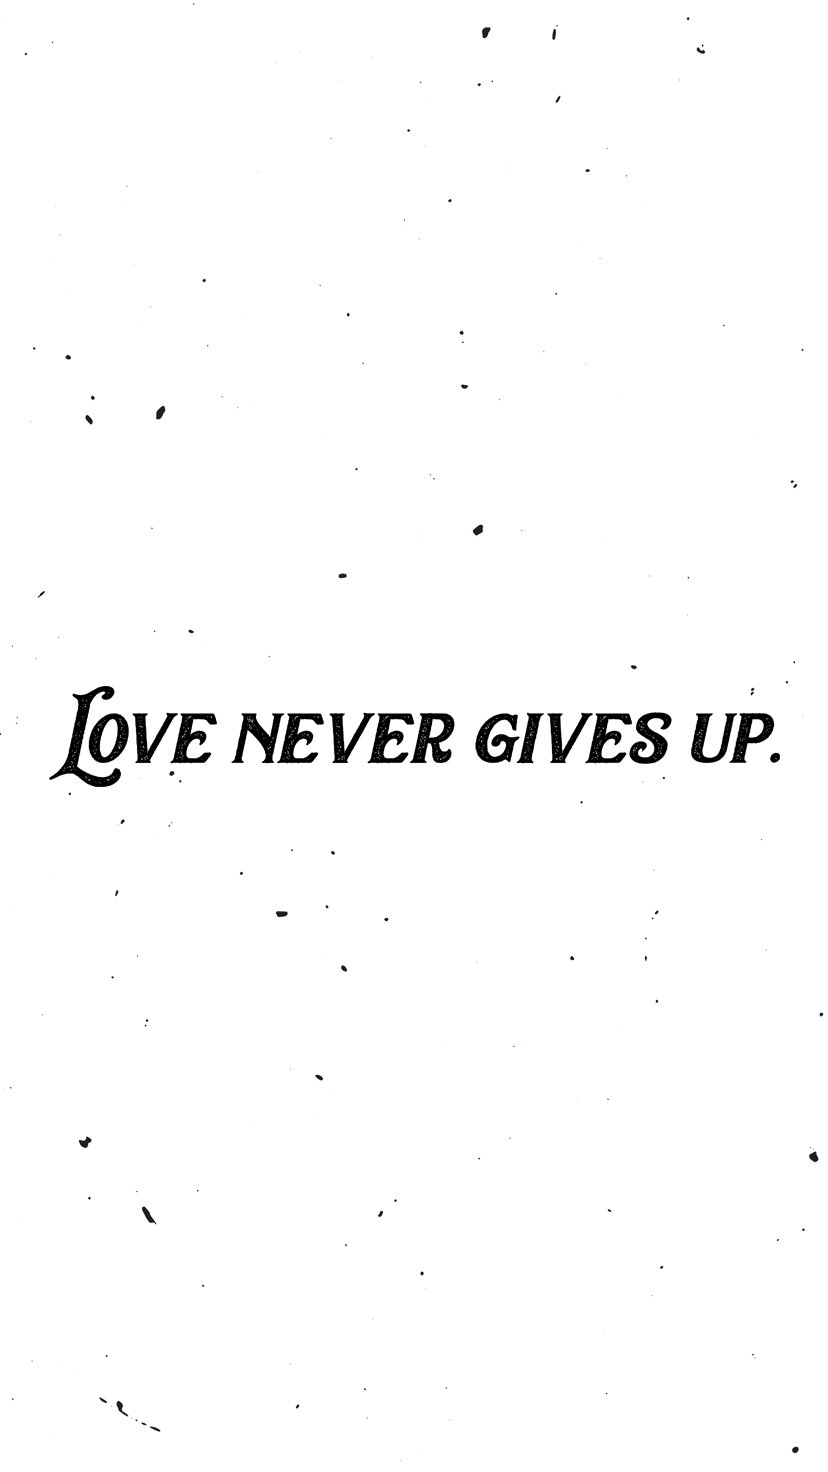 Love-Never-Gives-Up-iPhone-Wallpaper.jpg